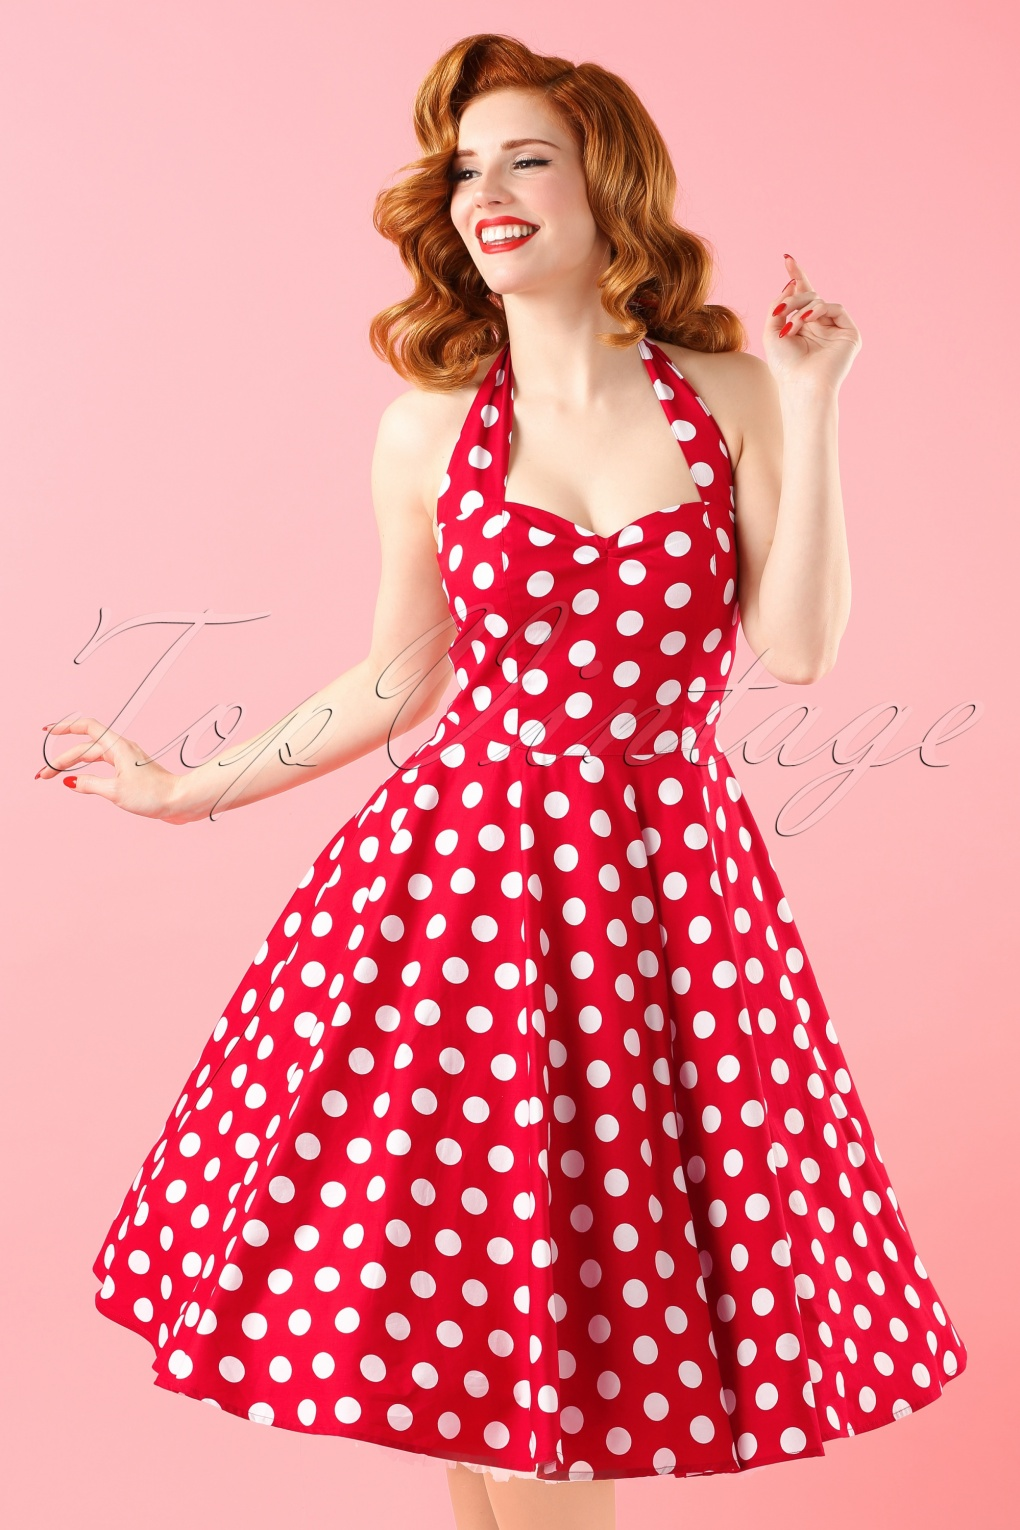 1950s Polka Dot Dresses 50s Meriam Polkadot Swing Dress in Red and White £50.91 AT vintagedancer.com